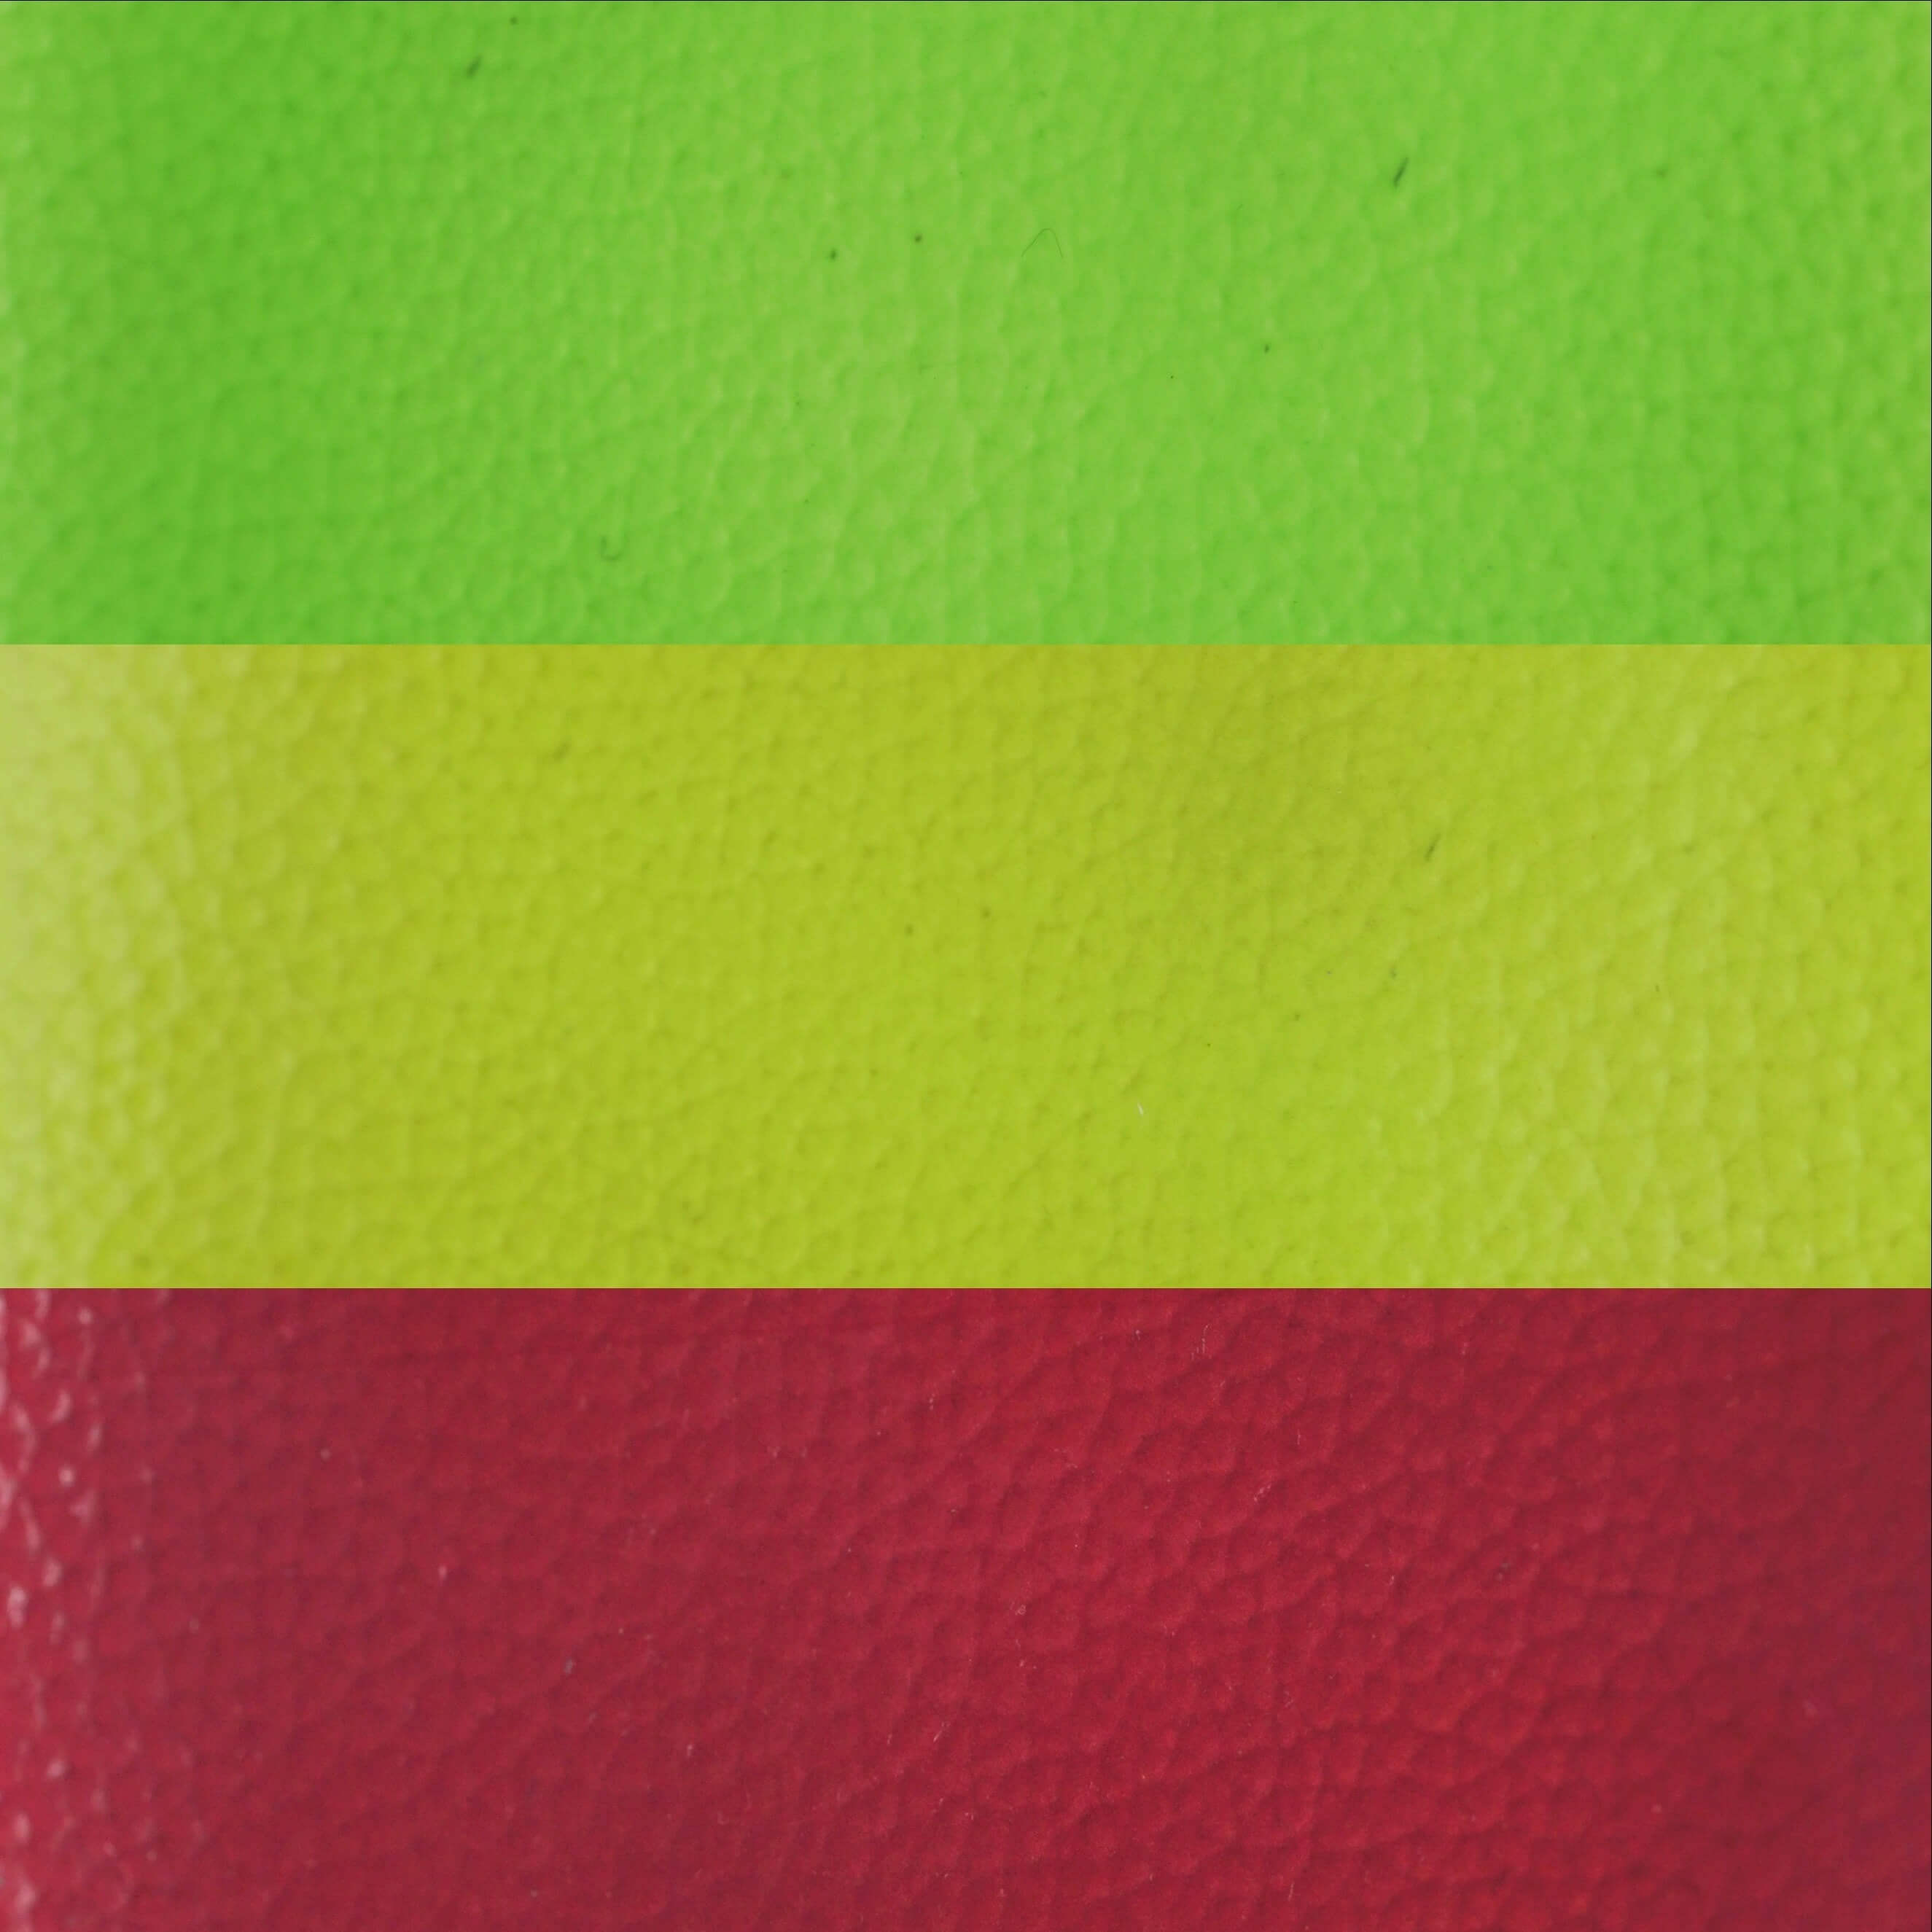 Triple Thermal Paint - Rust Red/Yellow/Lime Green